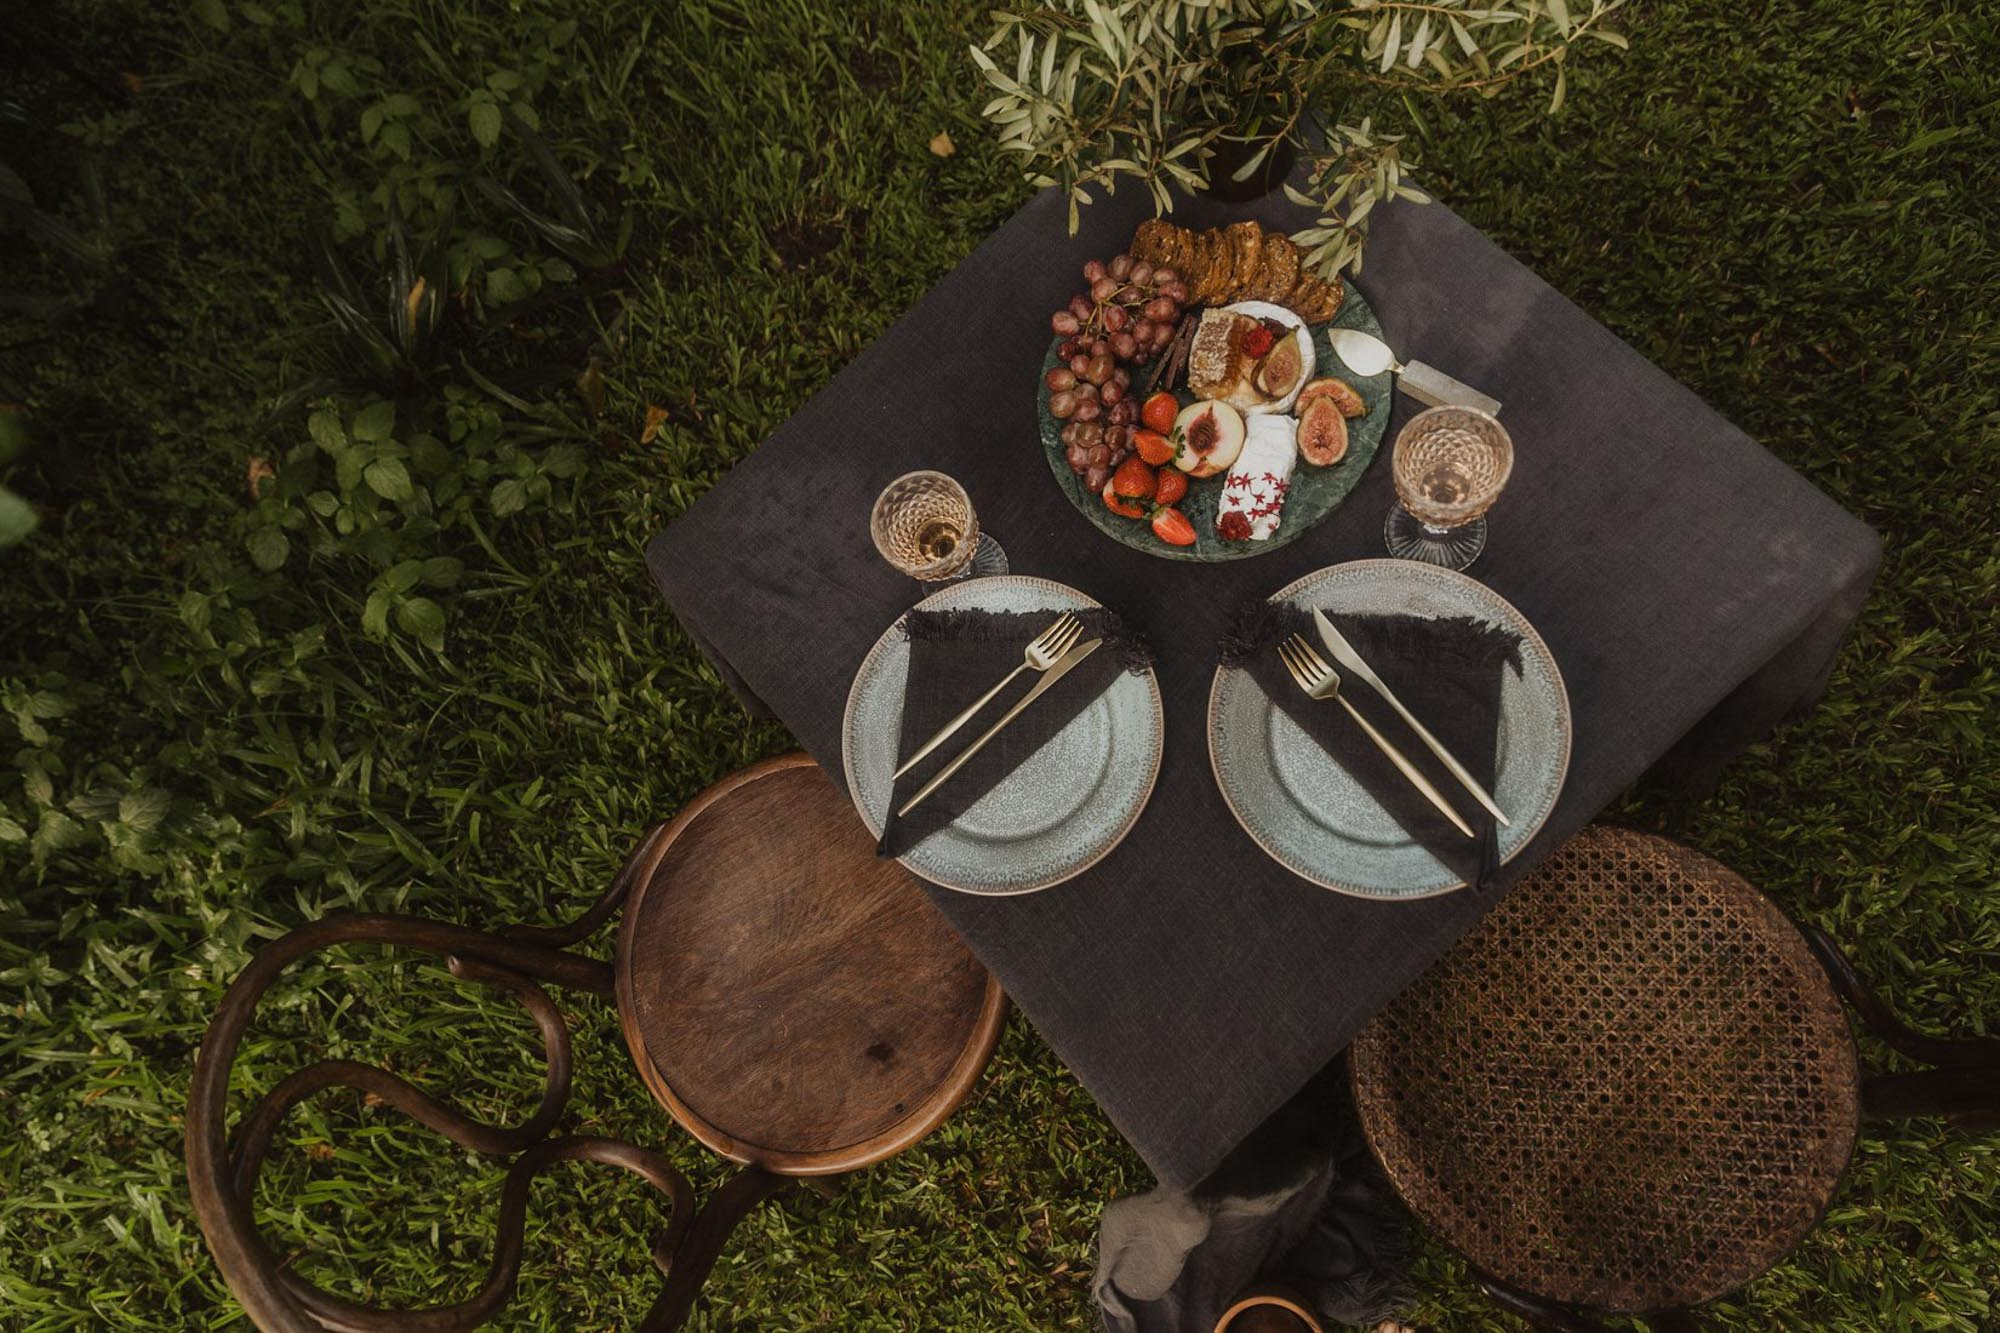 Styled Photshoot - Orchard Picnic Cairns  - Event Styling and Catering by The Collection Co-13.jpg